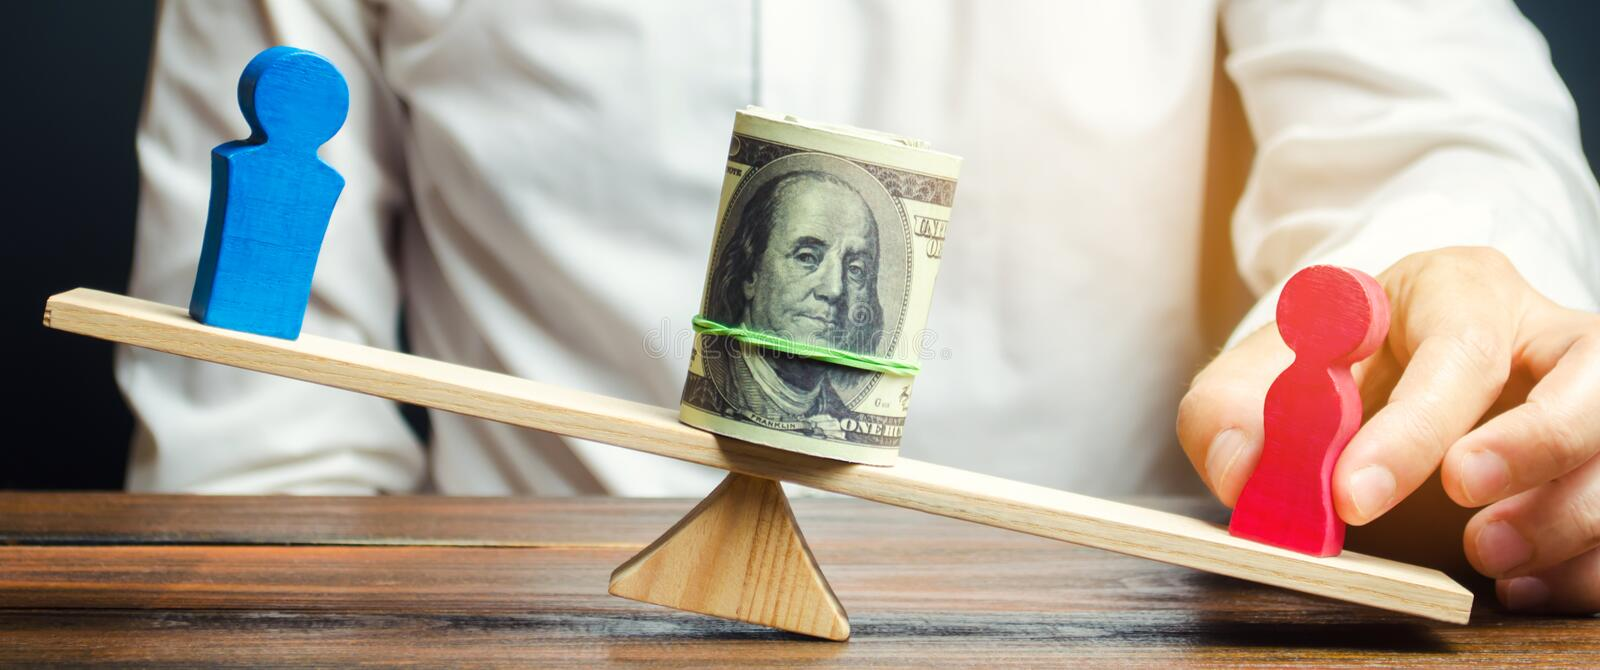 Wooden figures of man and women on the scales. Concept of gender pay gap. Income inequality. Oppression of women. Gender. Discrimination. Underestimation of stock photography